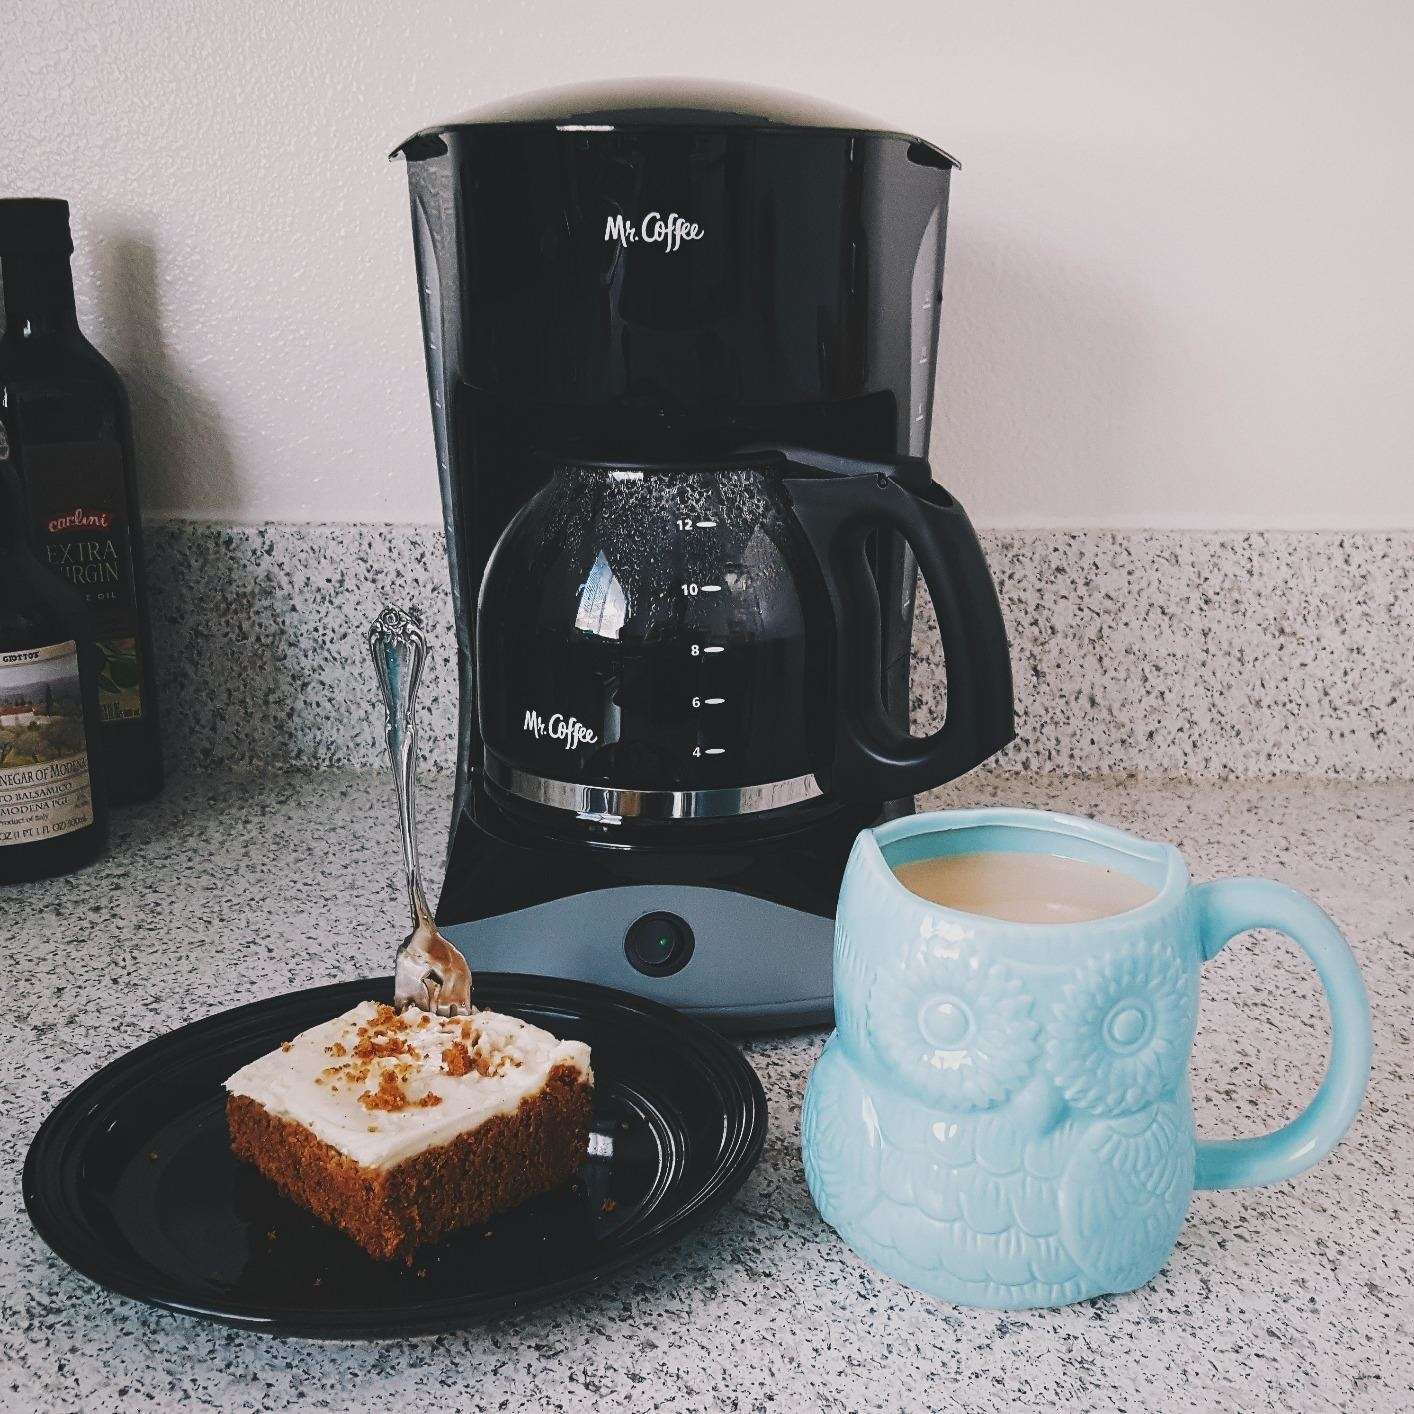 black Mr.Coffee pot full of coffee on a counter next to some coffee cake and a blue owl mug